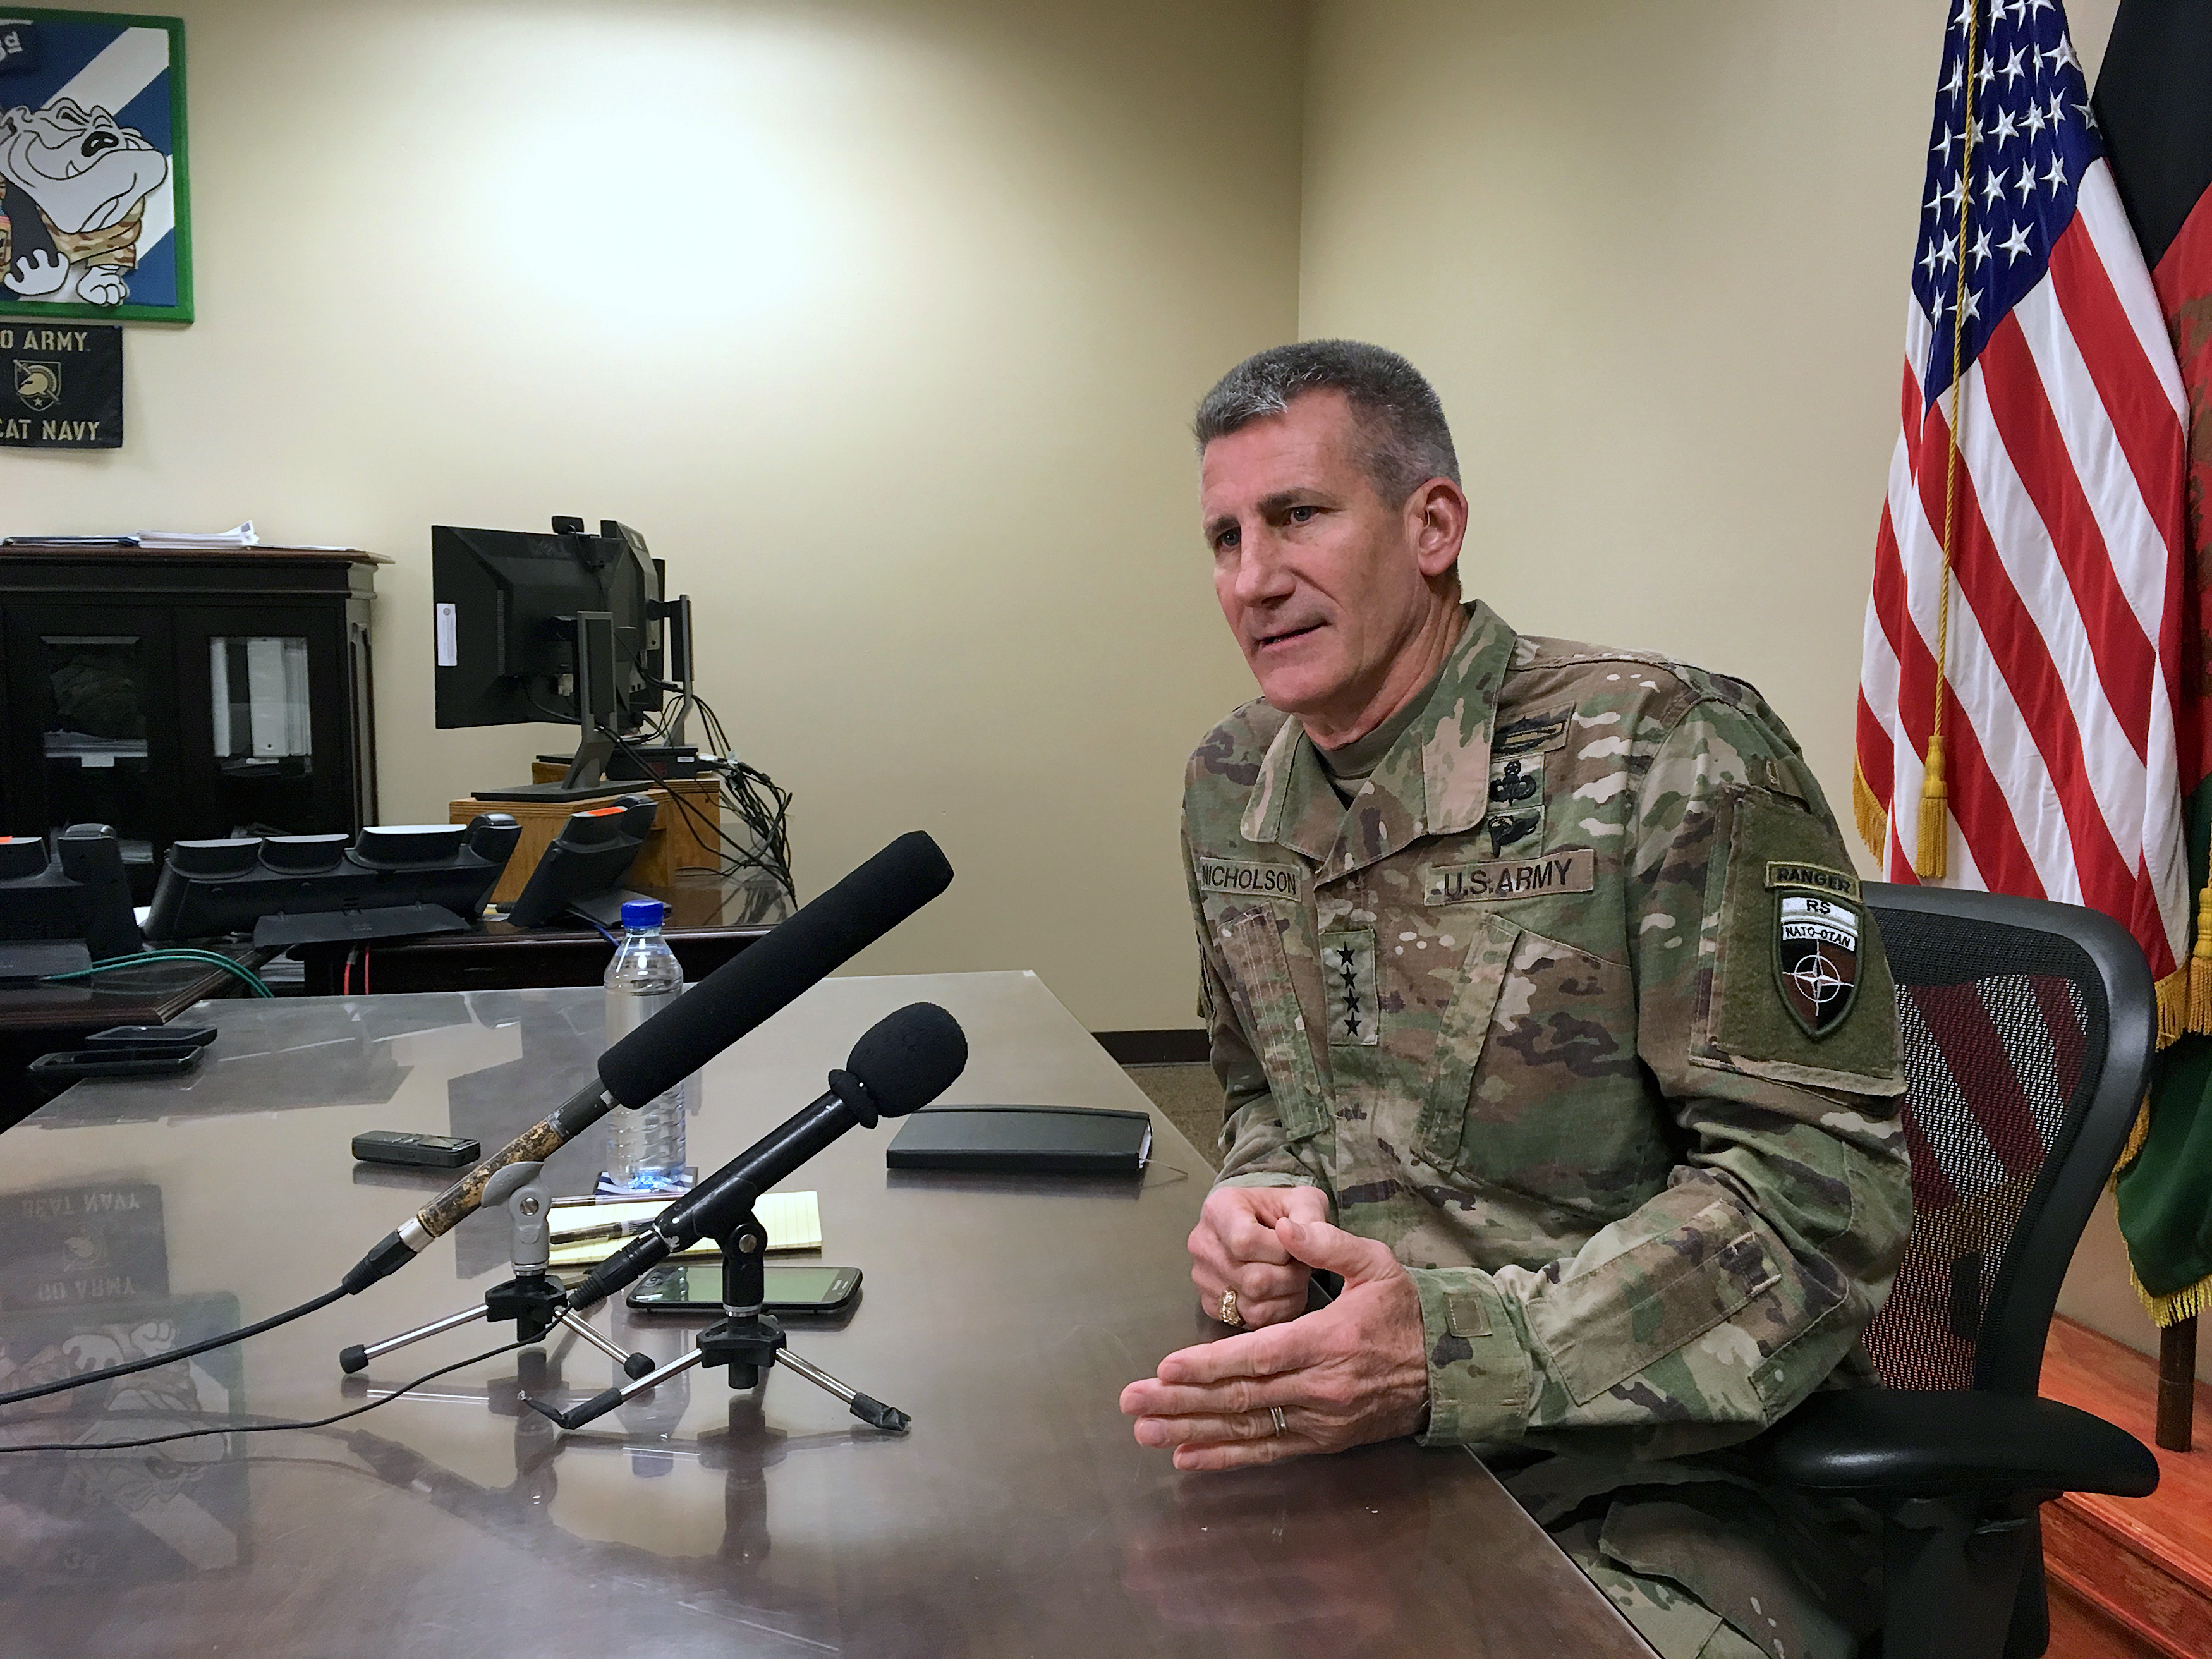 Best time to negotiate peace is now, US general tells Taliban